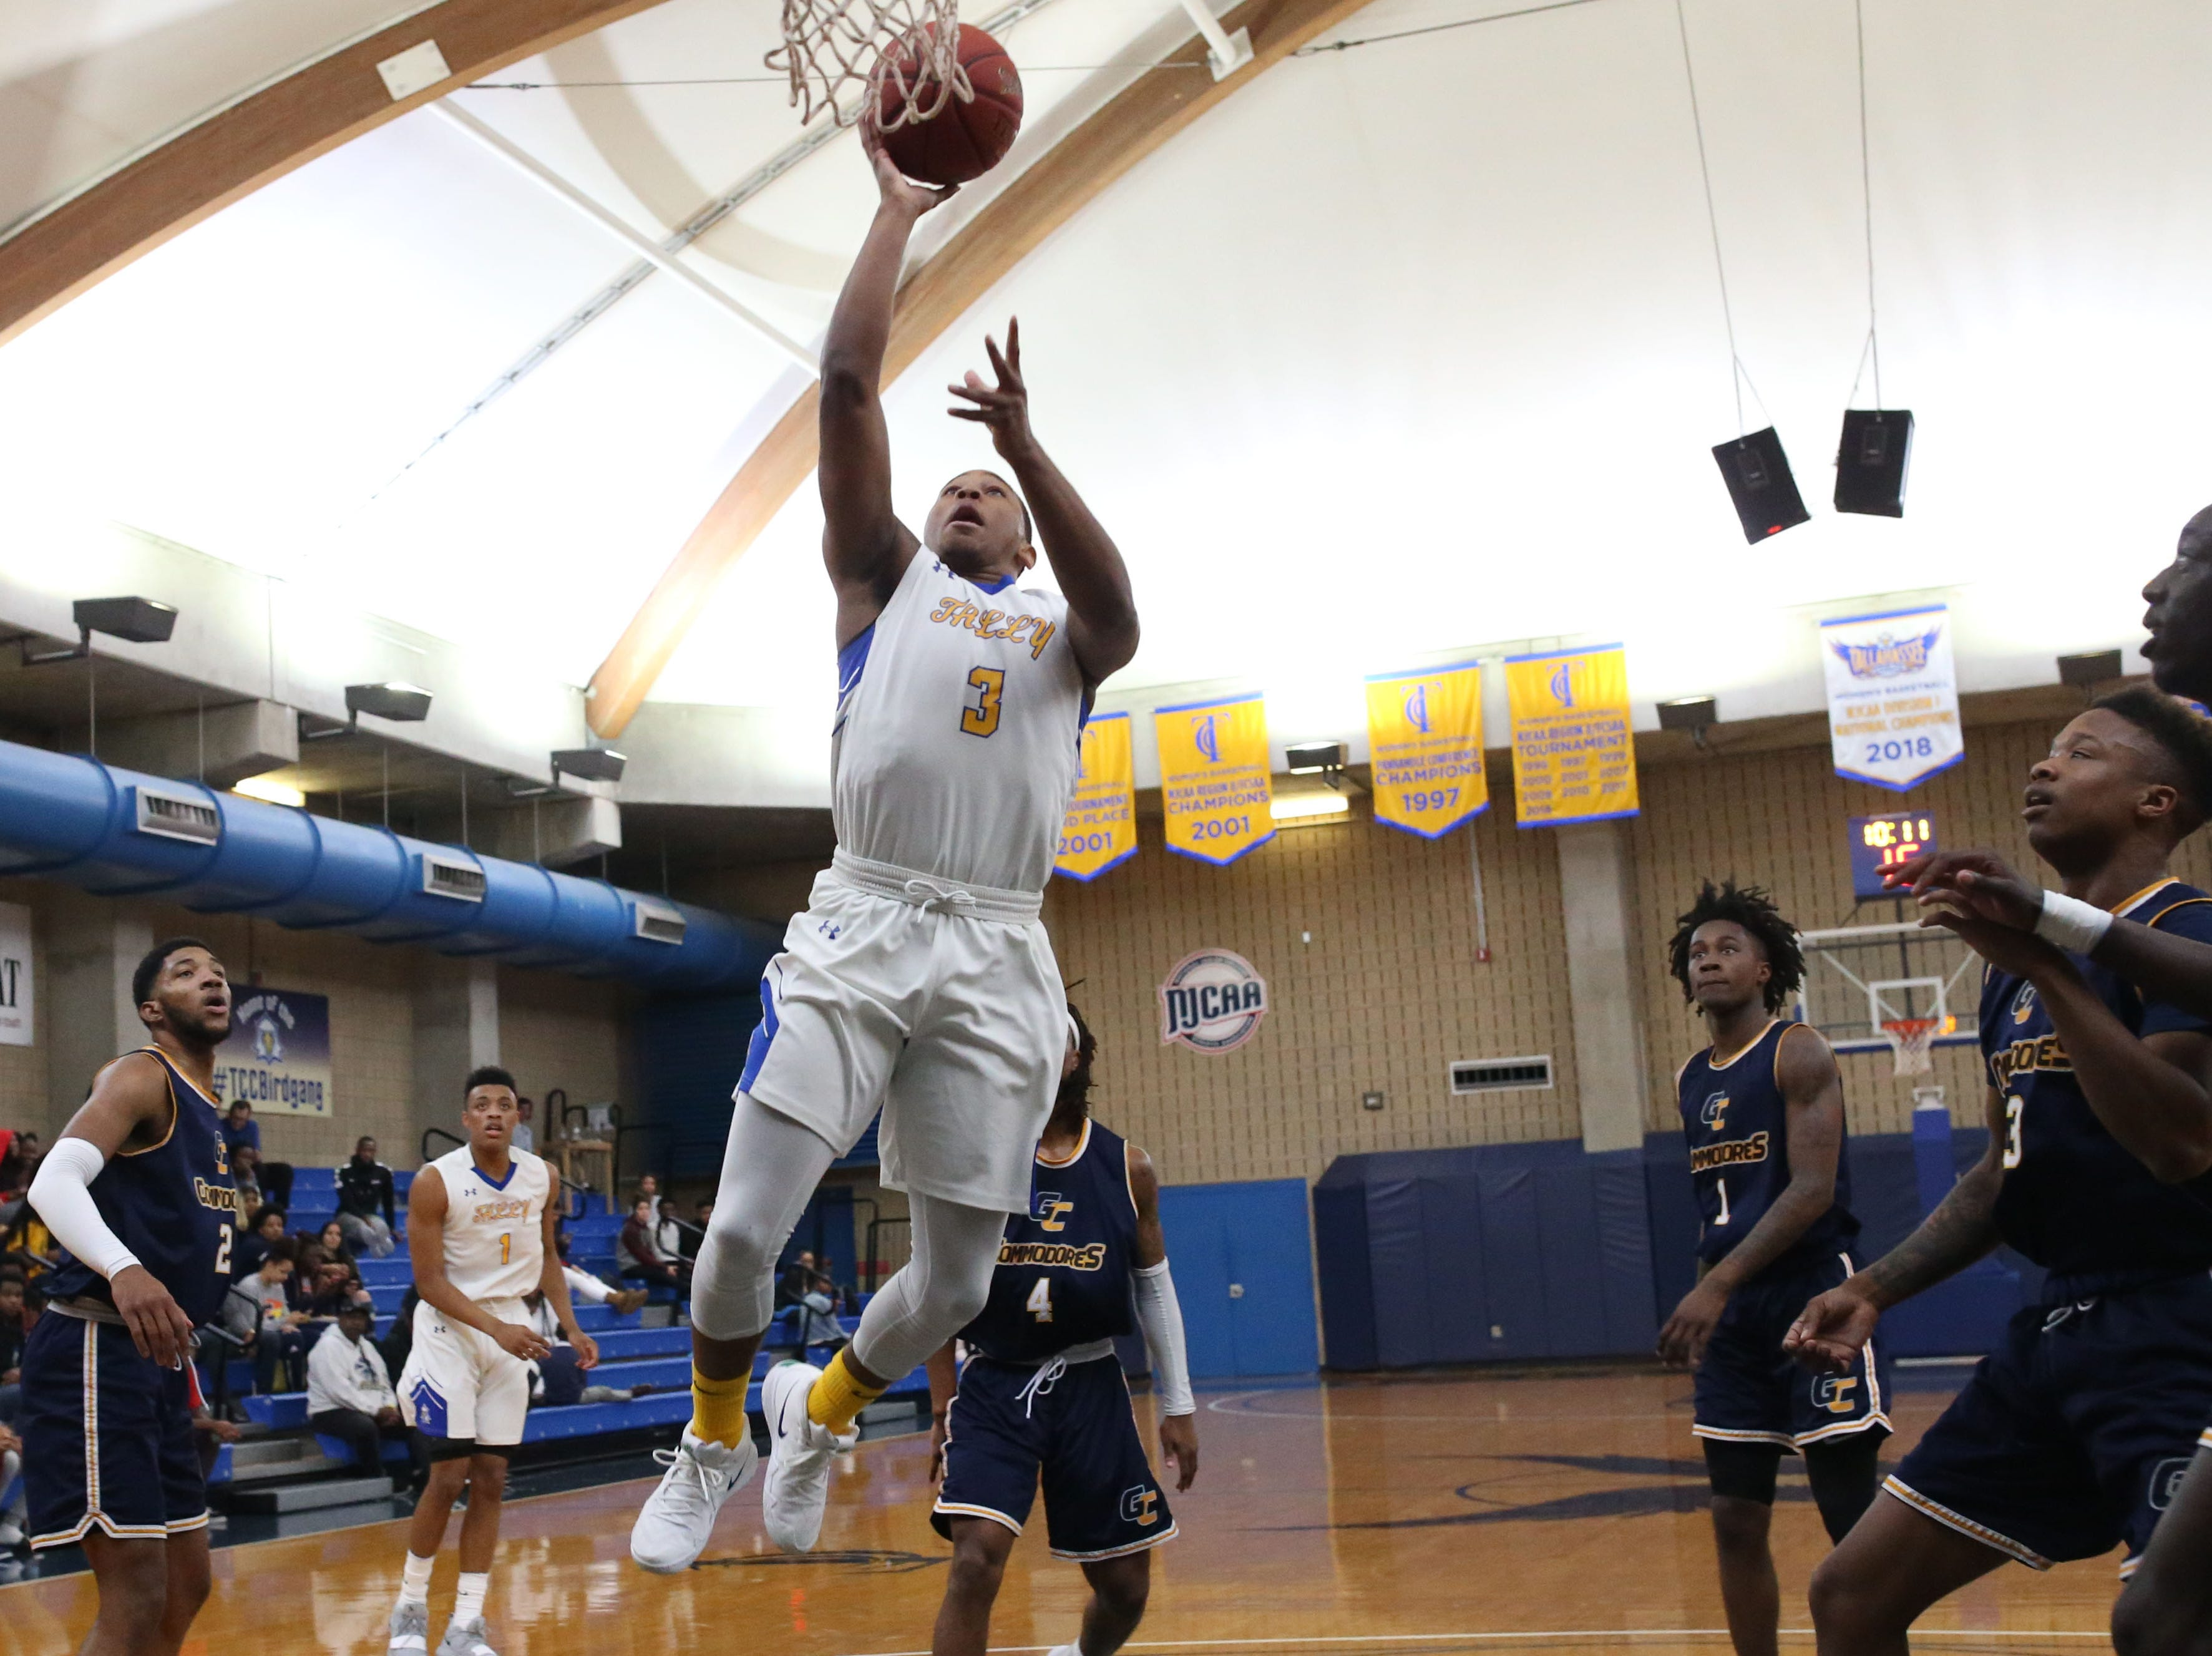 Tallahassee Community College Eagles guard Mustafa Lawrence (3) goes for a layup. The Tallahassee Community College Eagles host the Gulf Coast State College Commodores in a conference match-up in the Eagledome, Saturday, Jan. 5, 2019.